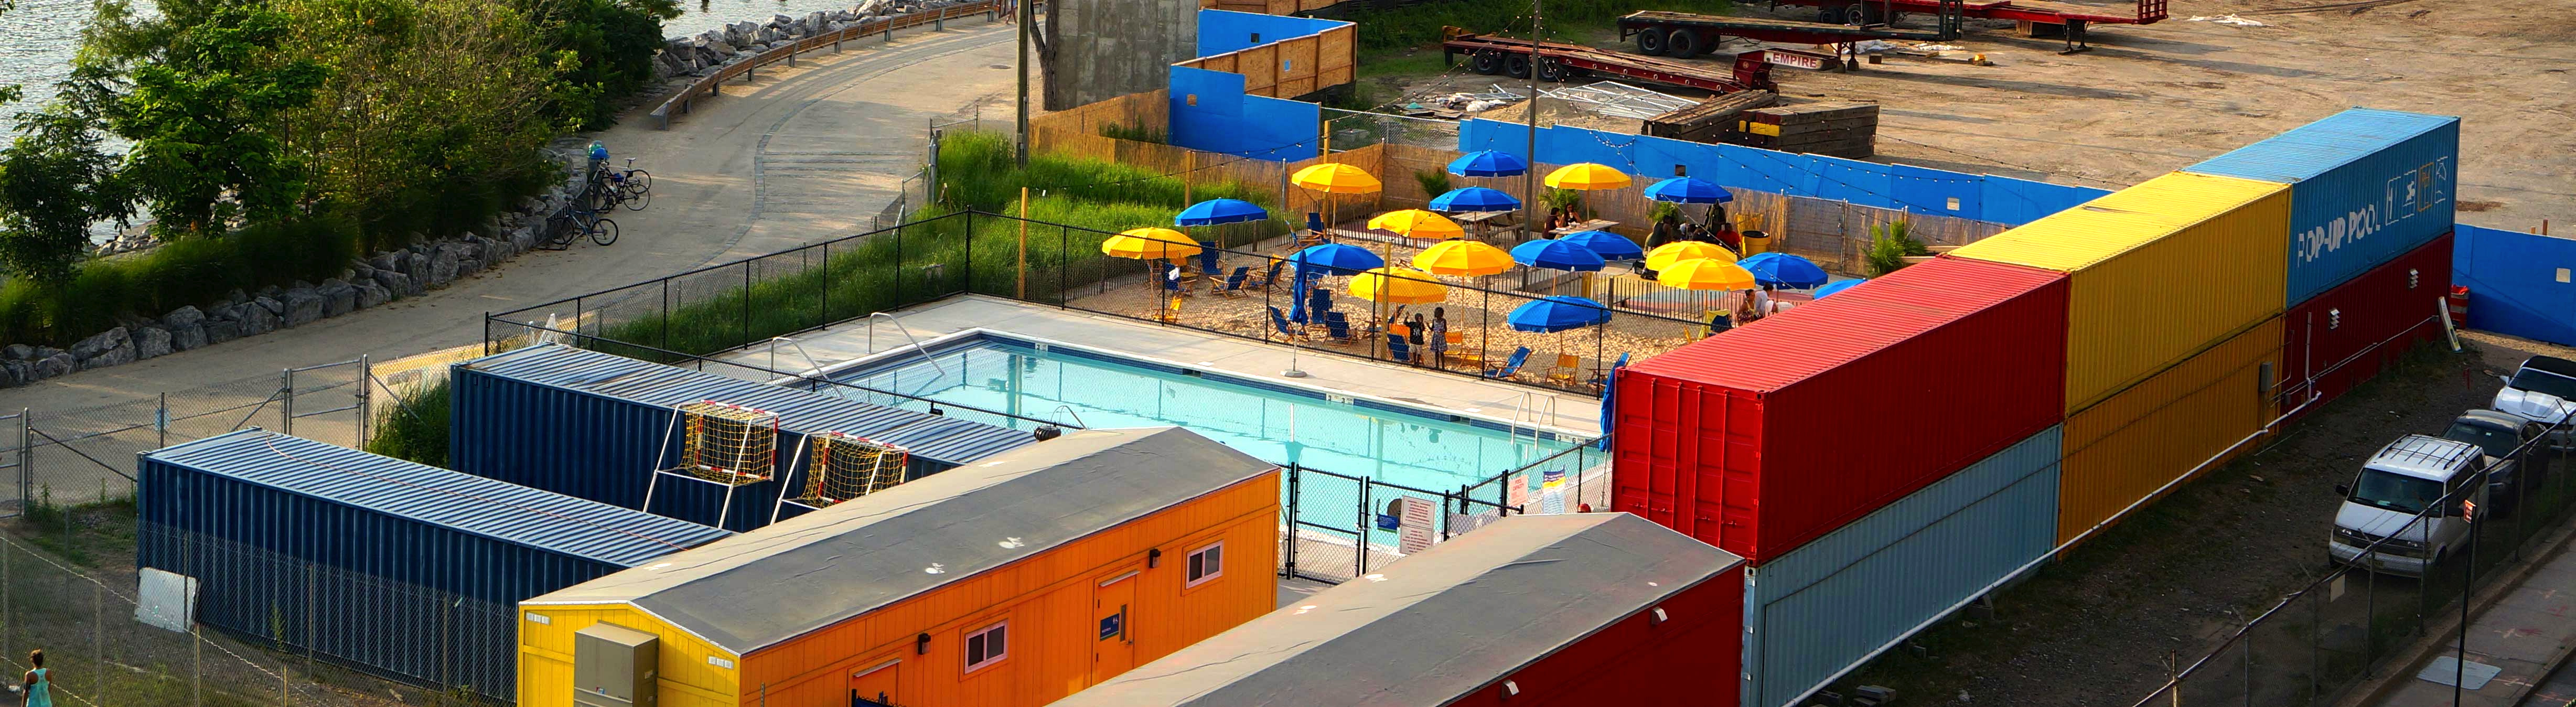 Time Out New York The Brooklyn Bridge Park Pop Up Pool Opens Thursday June 27 Lizzmonade